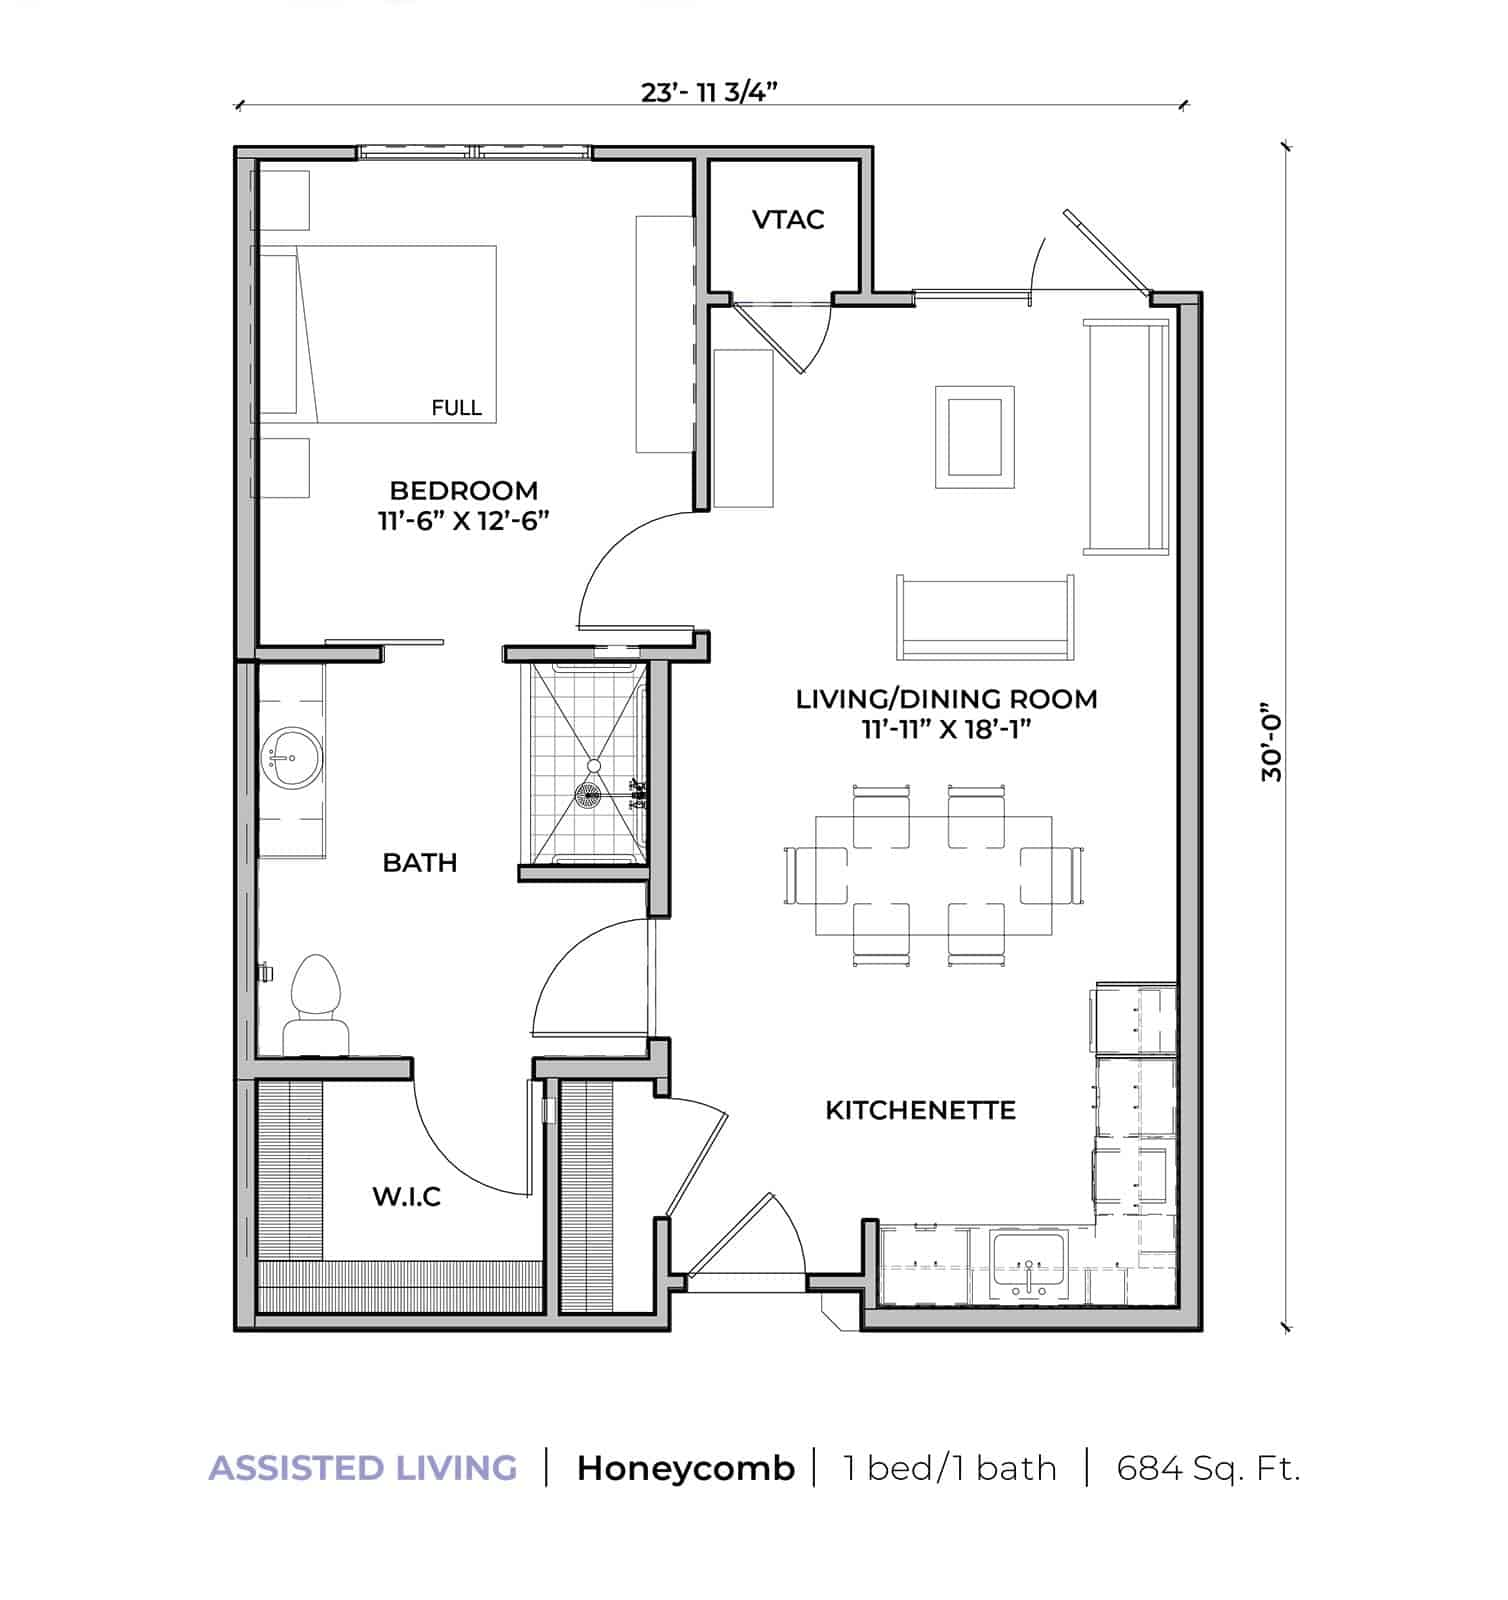 Assisted living Honeycomb one-bedroom one-bathroom apartment floor plan